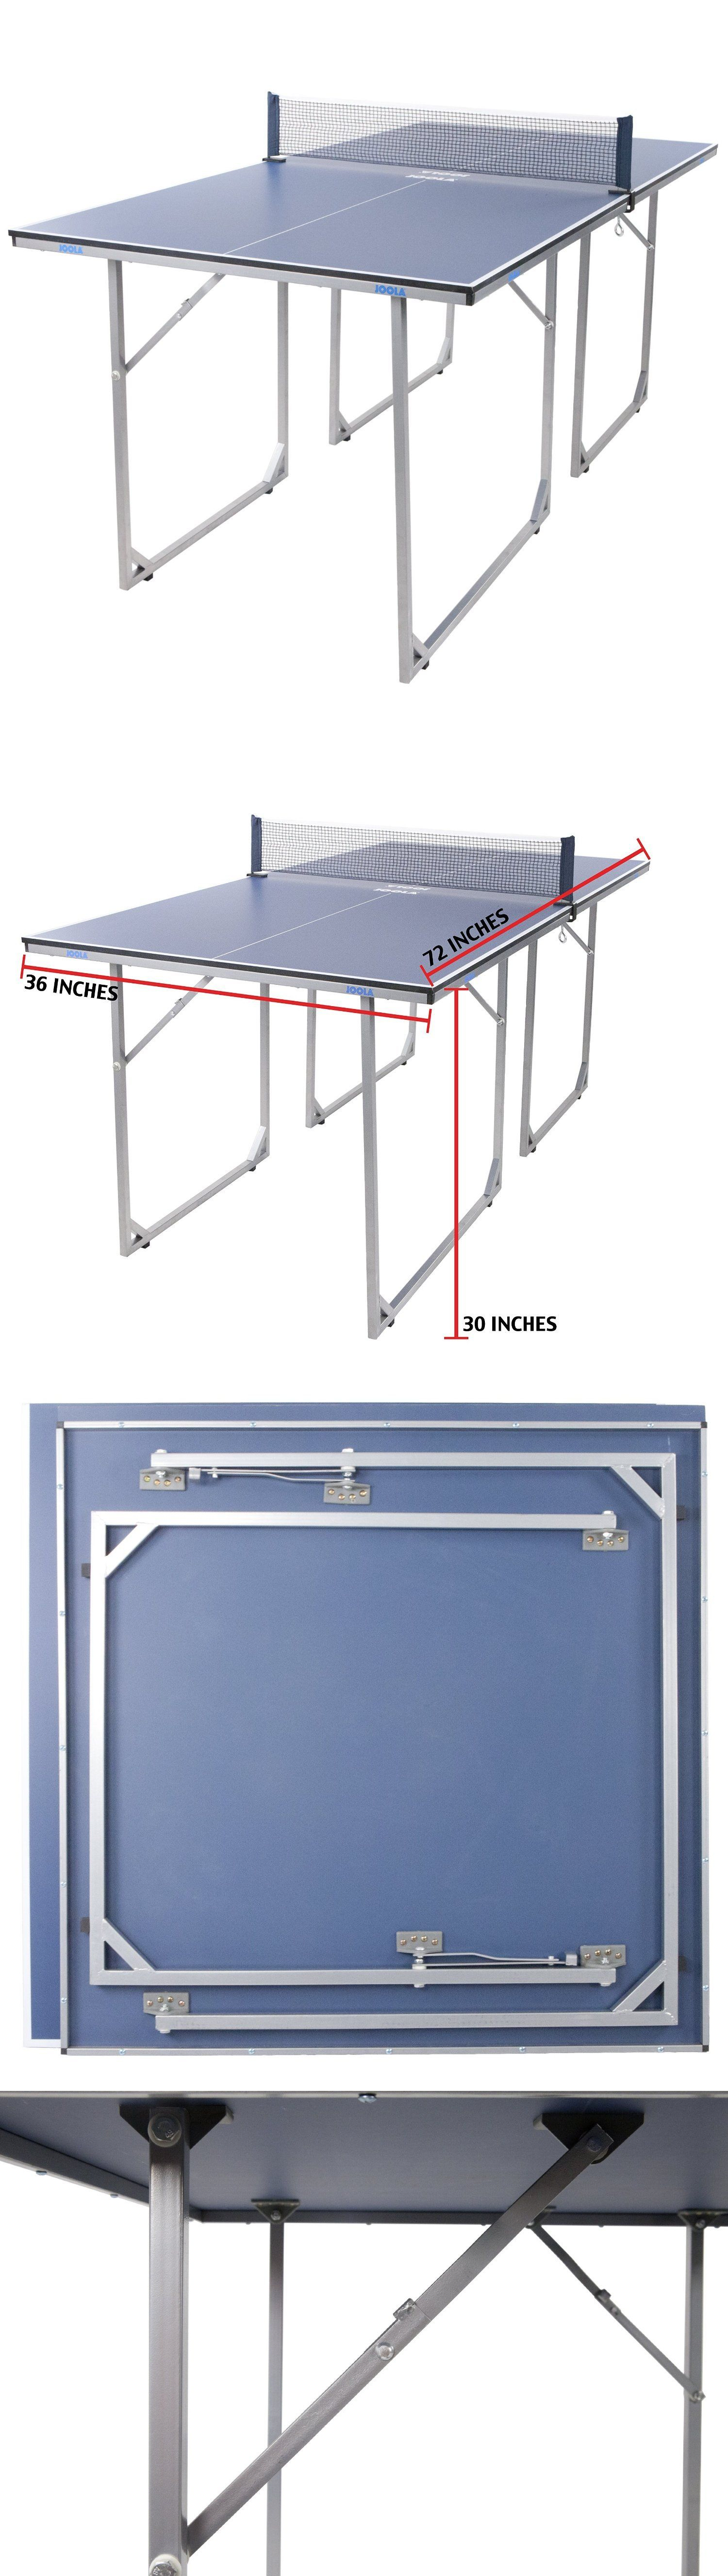 Tables 97075: Ping Pong Table Tennis Table Sports Game Room Small Compact  Portable Mid Size